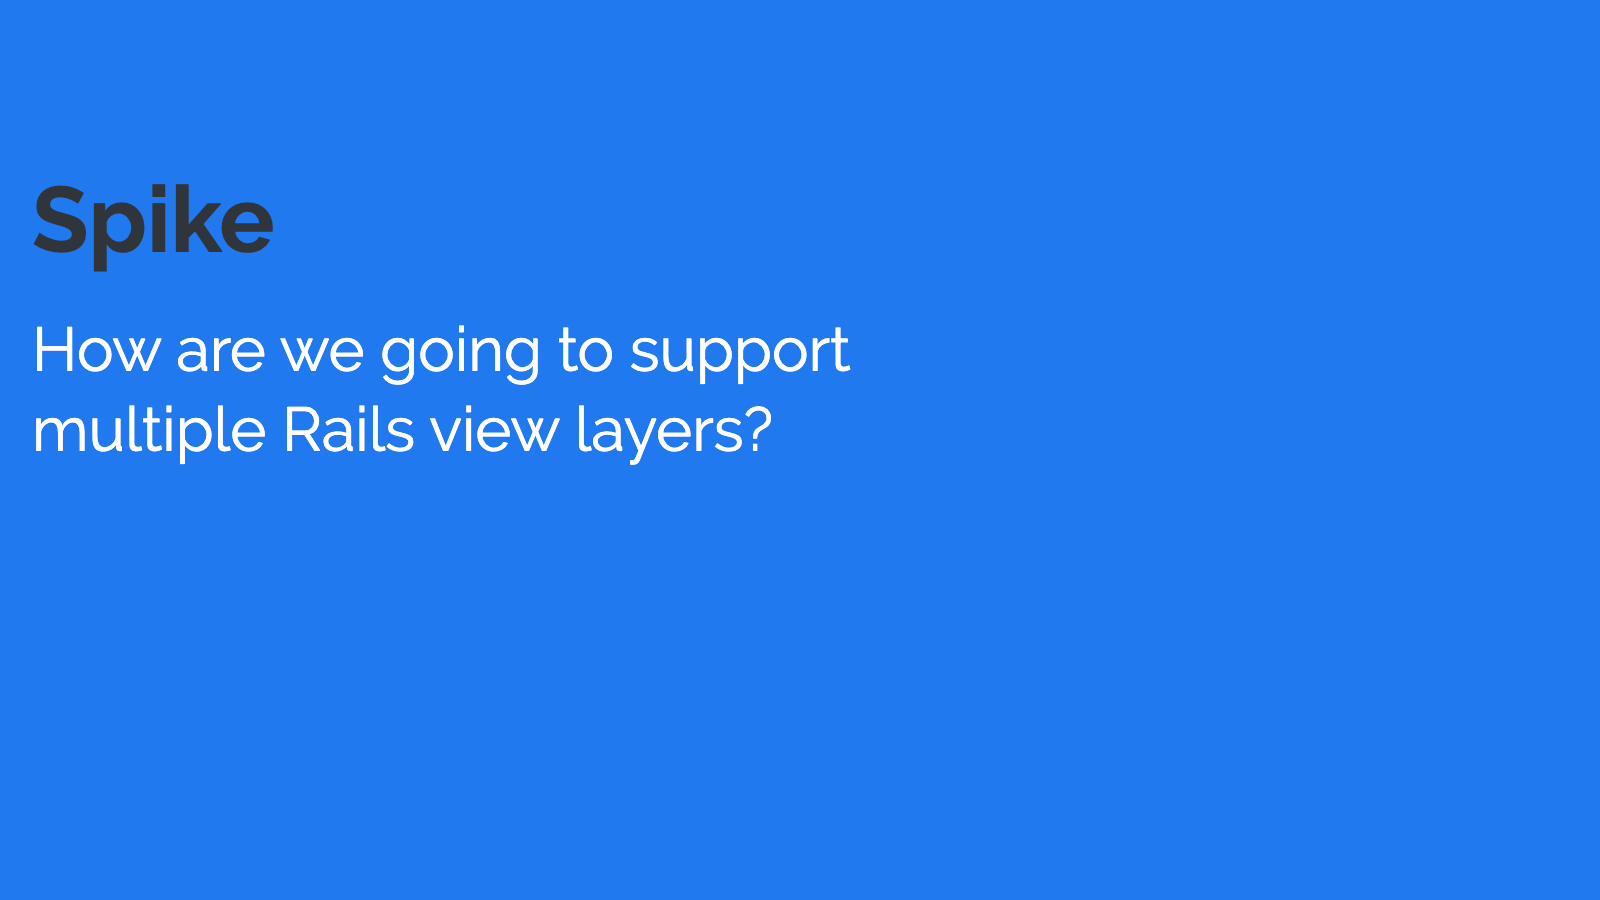 Slide content, Spike: How are we going to support multiple Rails view layers?